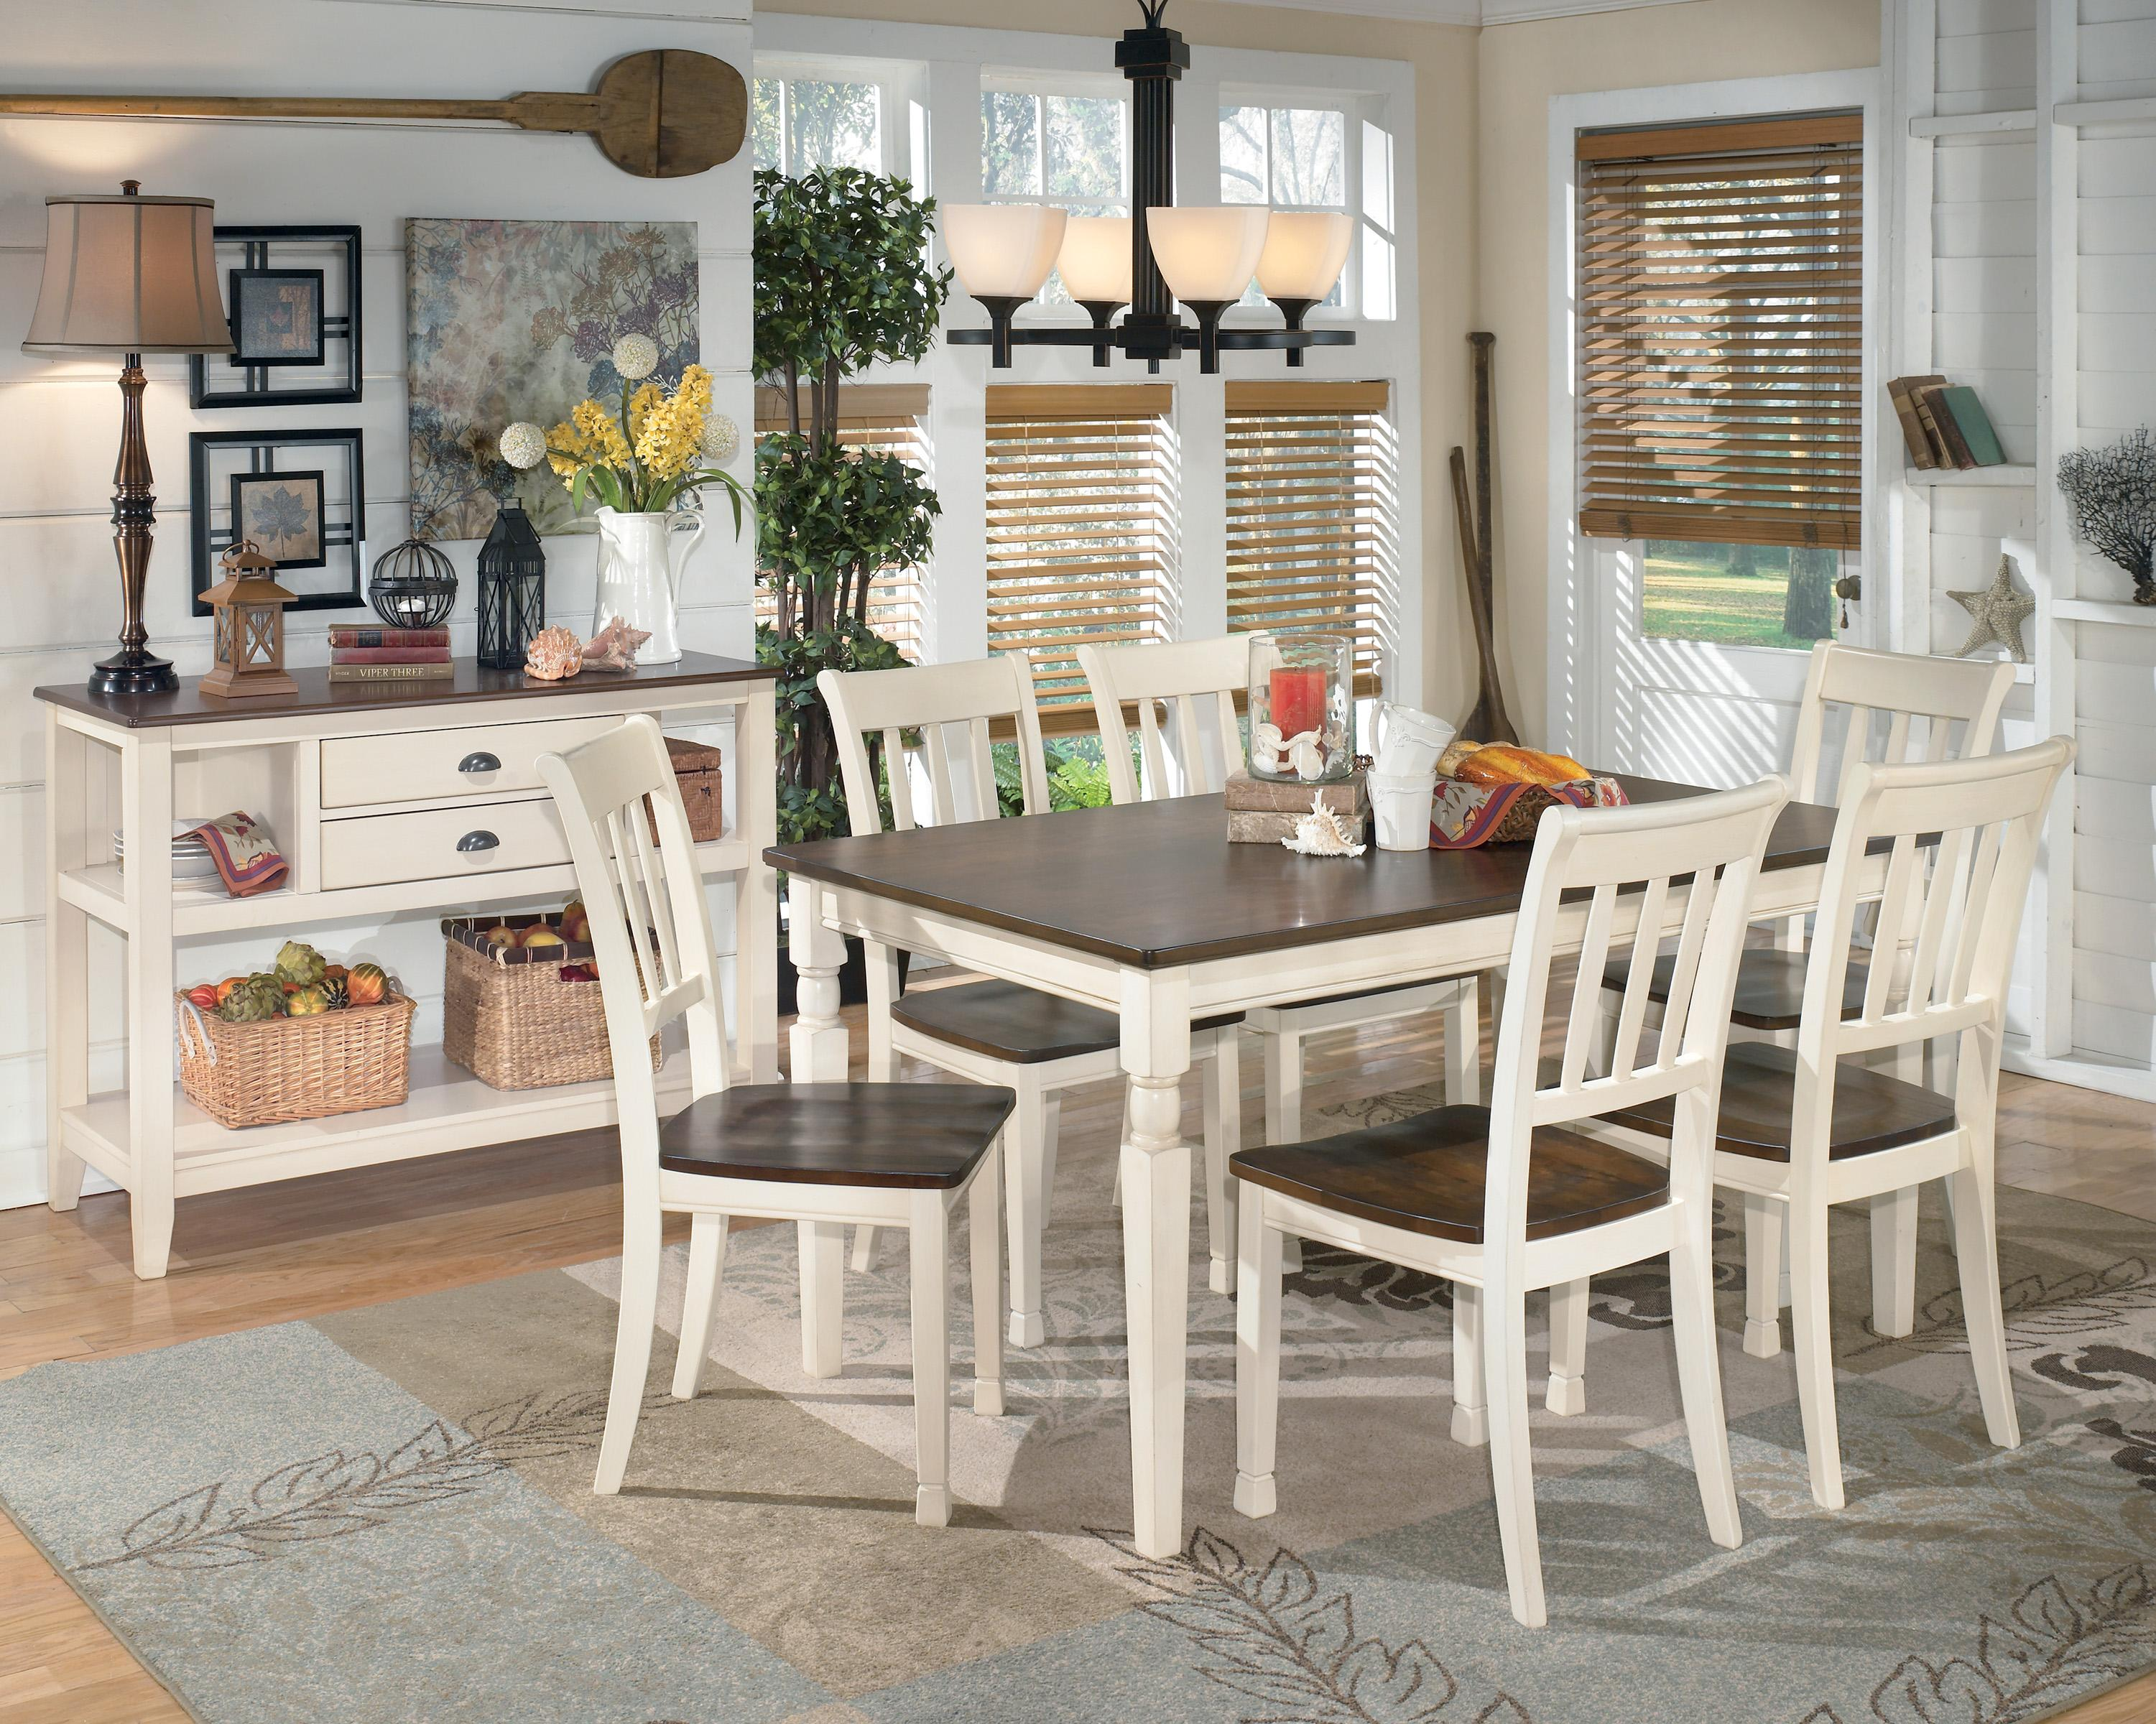 signature design by ashley whitesburg 5 piece rectangular dining signature design by ashley whitesburg 5 piece rectangular dining table set wayside furniture dining 5 piece sets